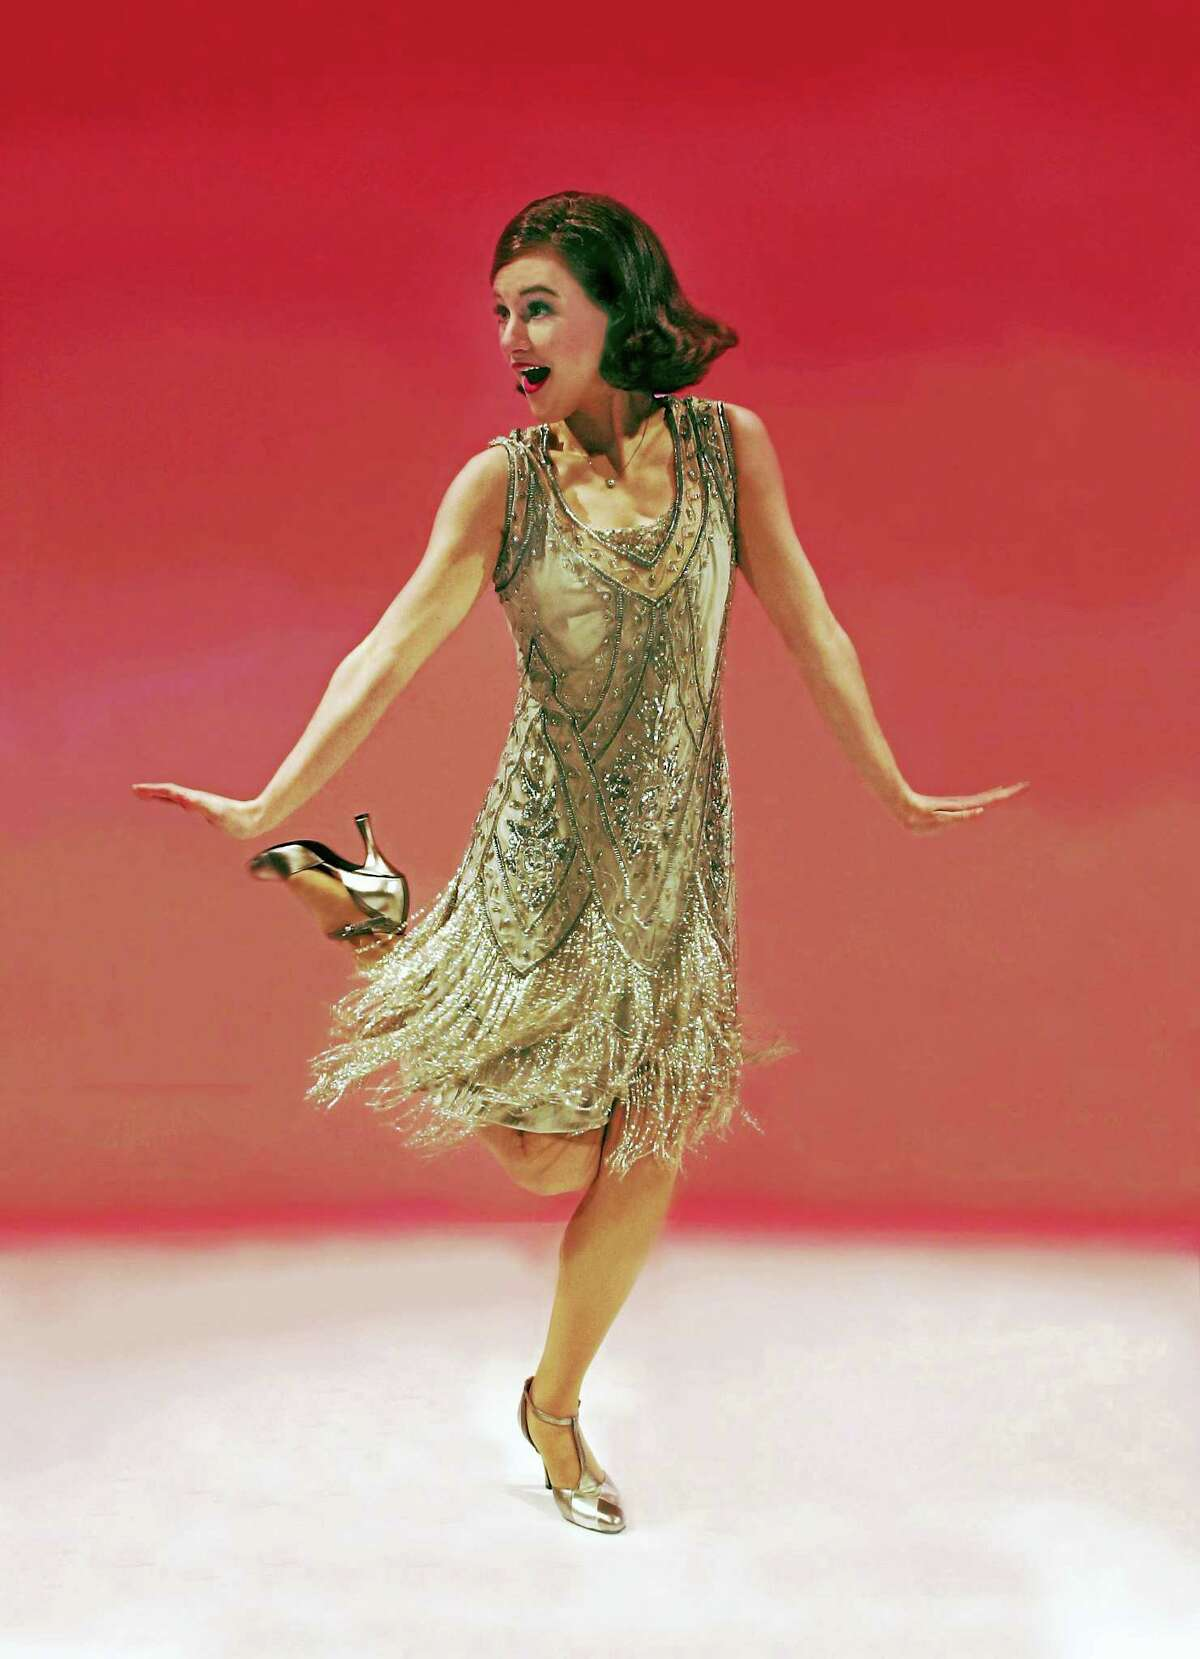 """Taylor Quick plays the role of Mille in Goodspeed Musicals' new show, """"Thoroughly Modern Millie,"""" opening April 21 at the theater in East Haddam."""